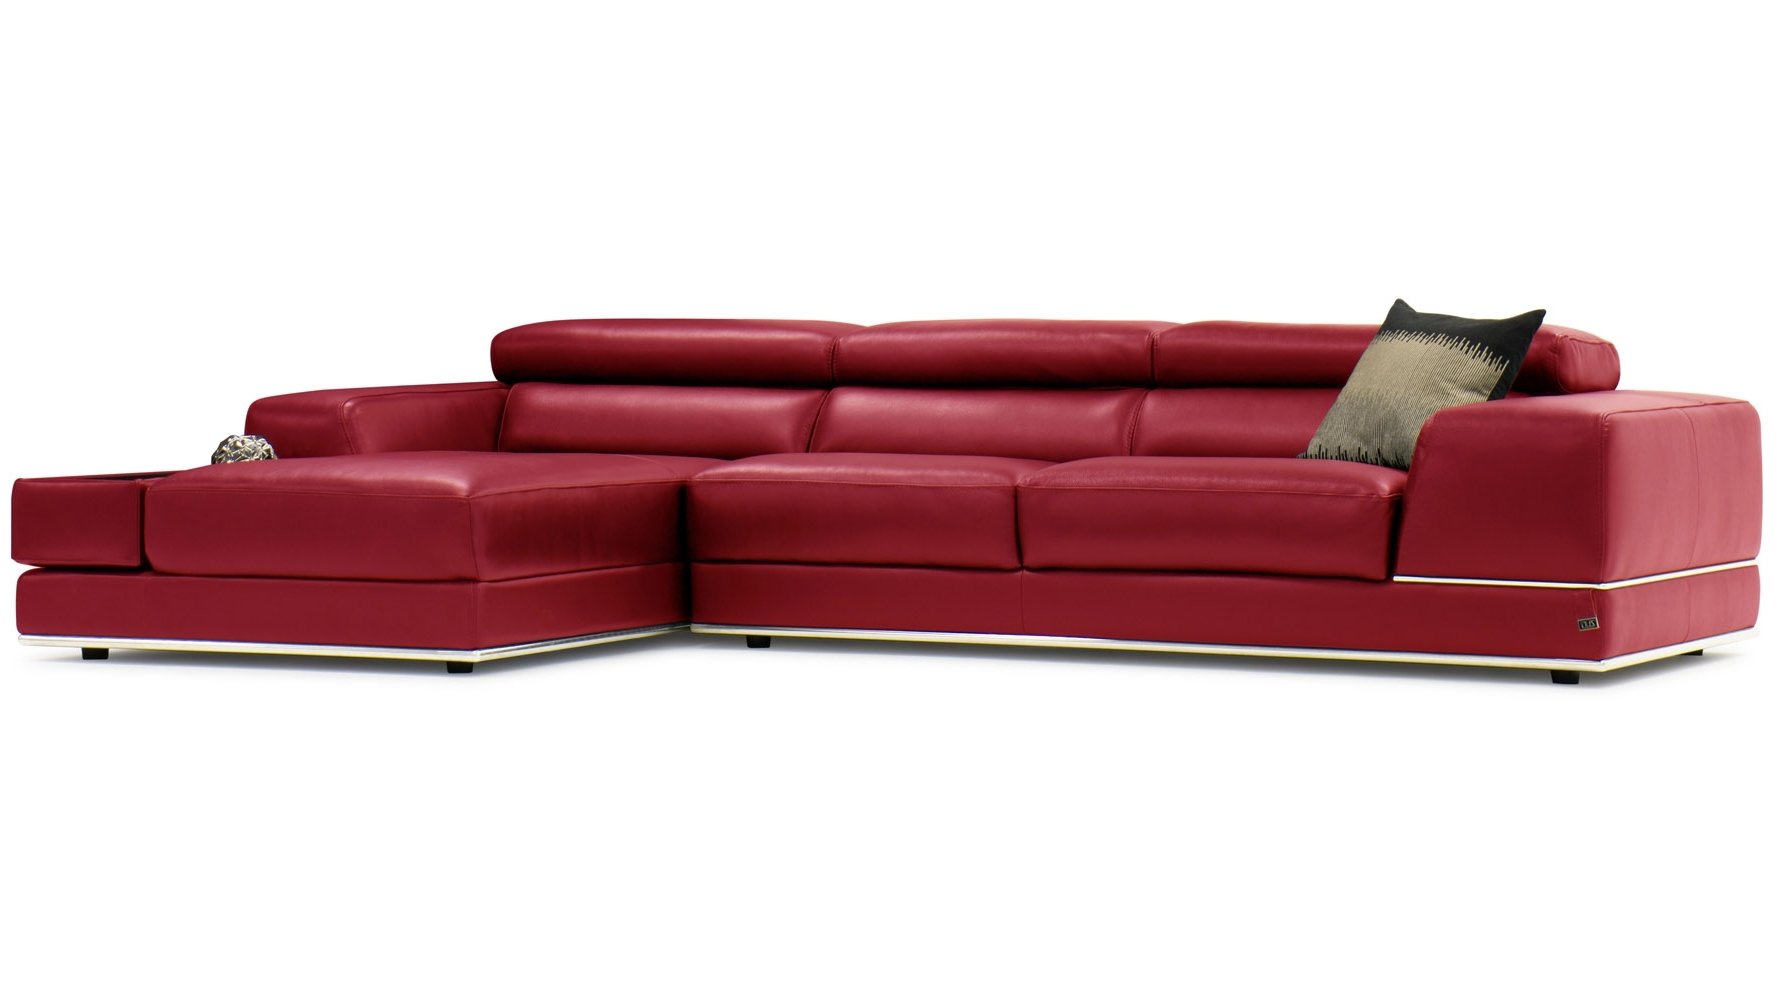 Red Leather Couches Throughout Favorite Encore Red Leather Sofa (View 13 of 15)